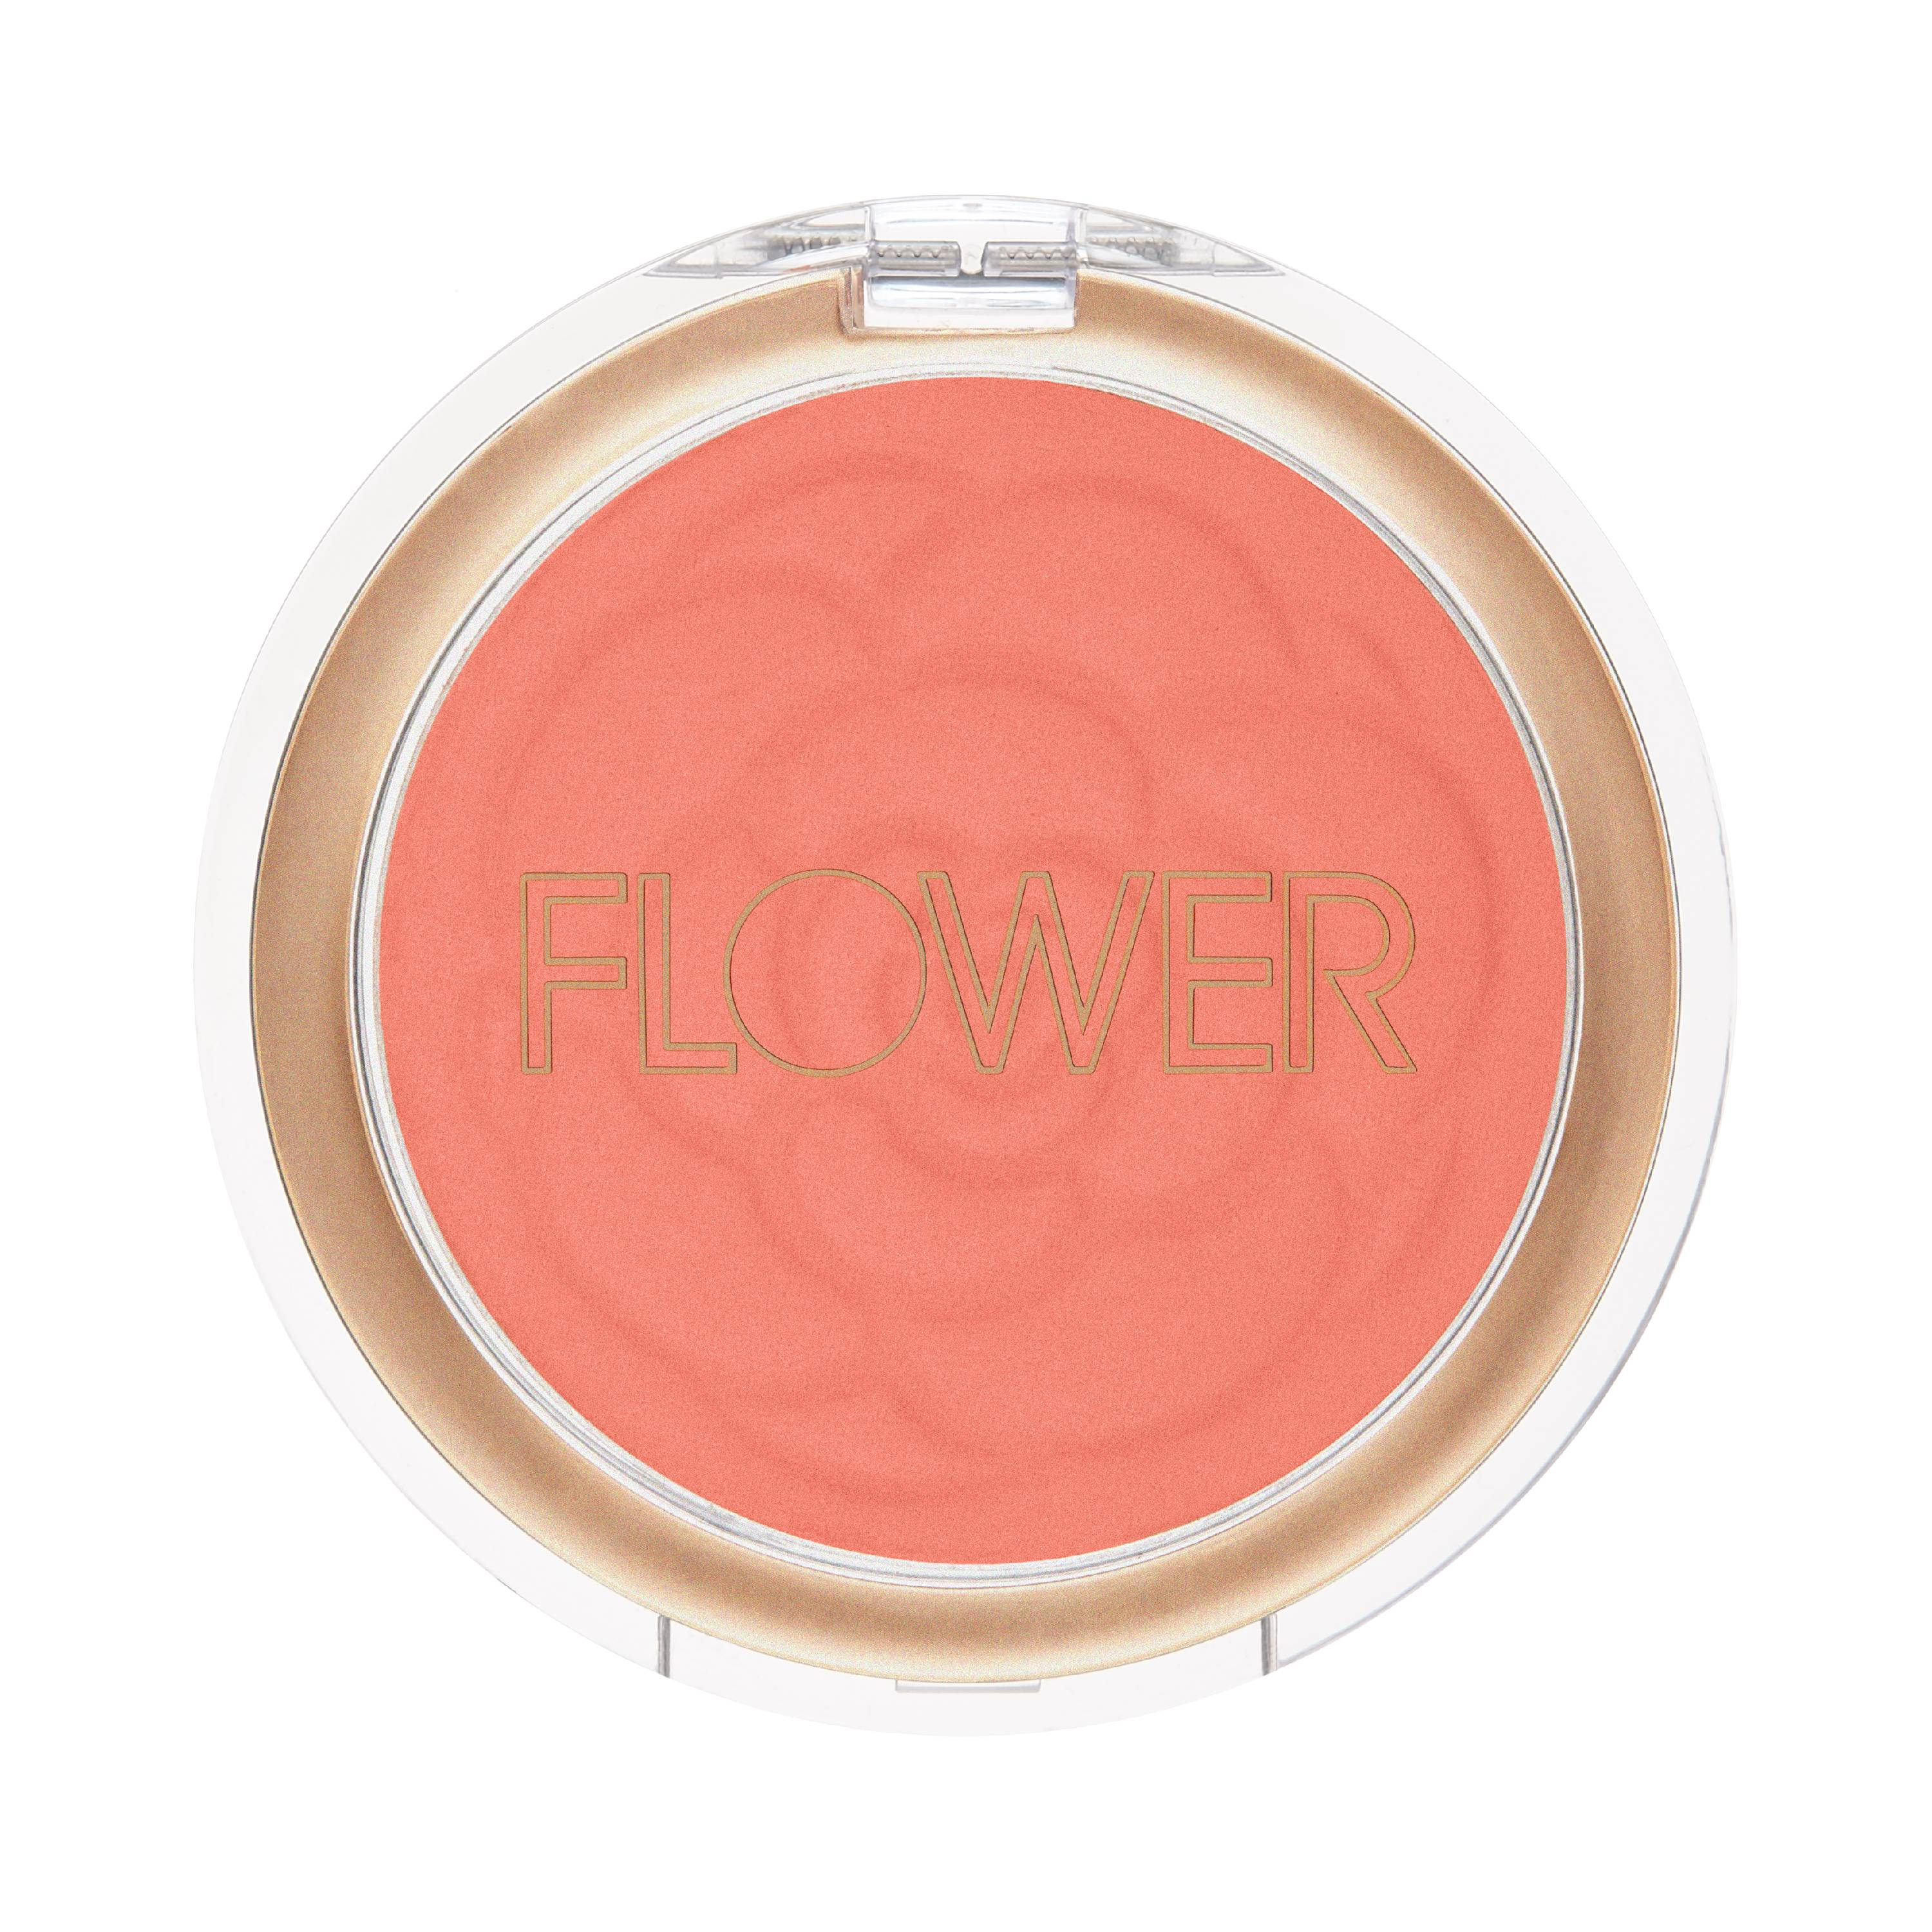 Flower Pots Powder Blush, PB4 Warm Hibiscus